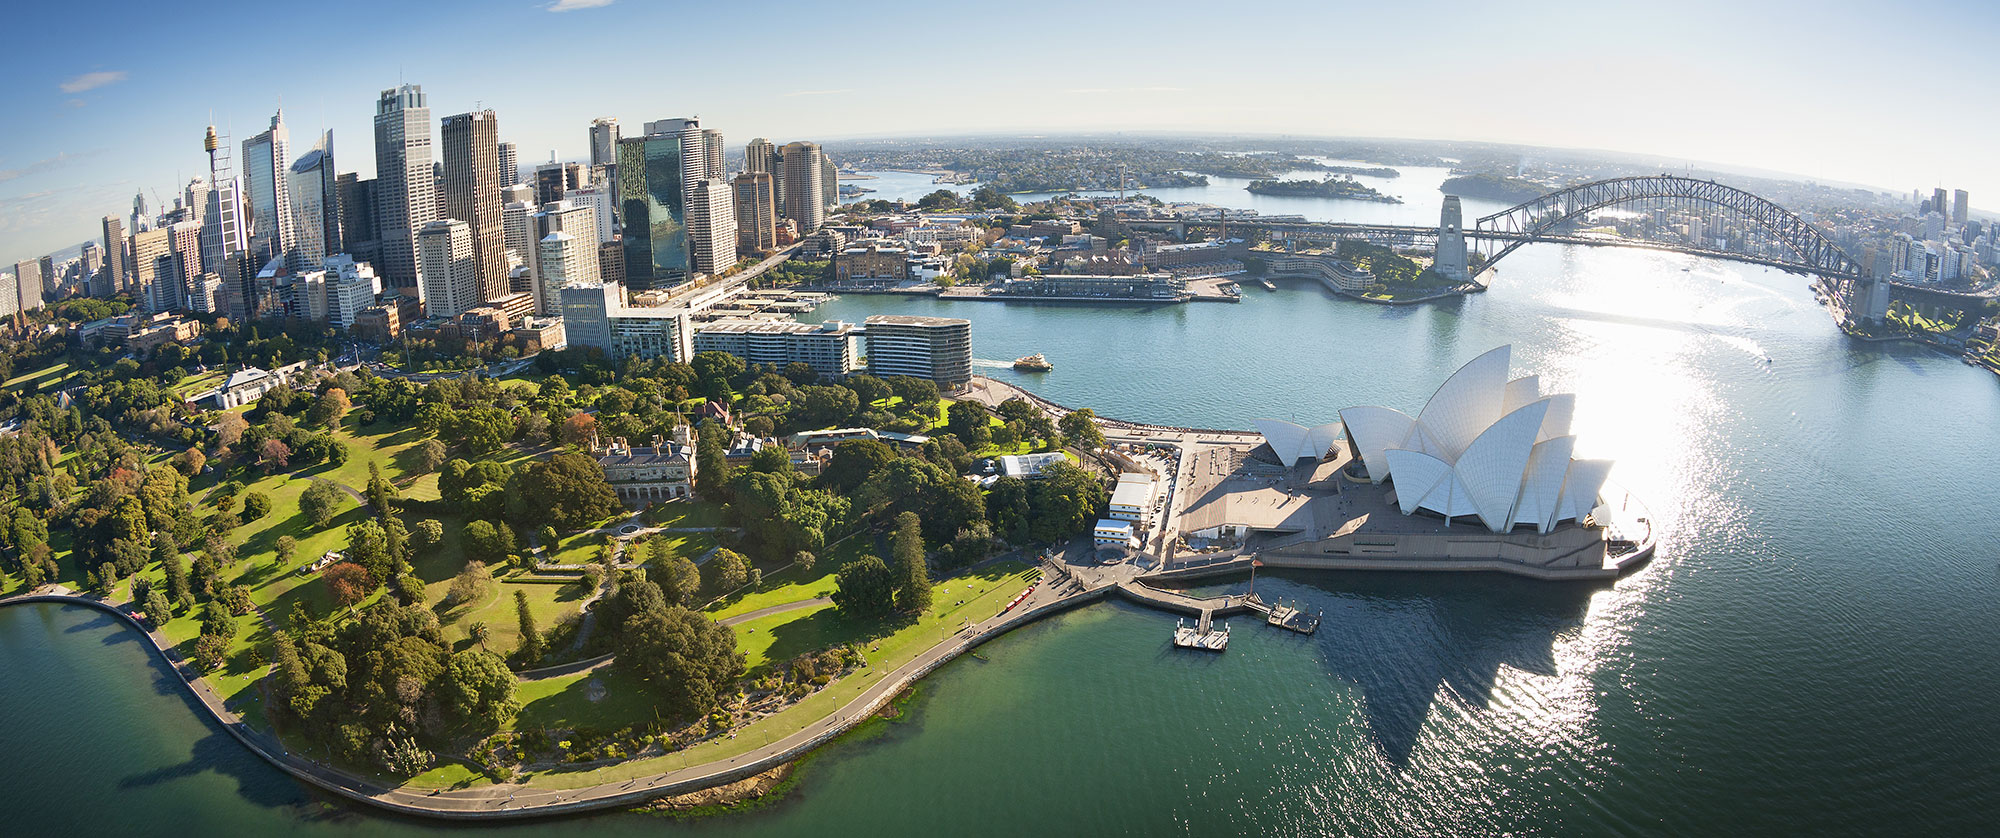 Australian Travel Packages: Sydney and Surrounds